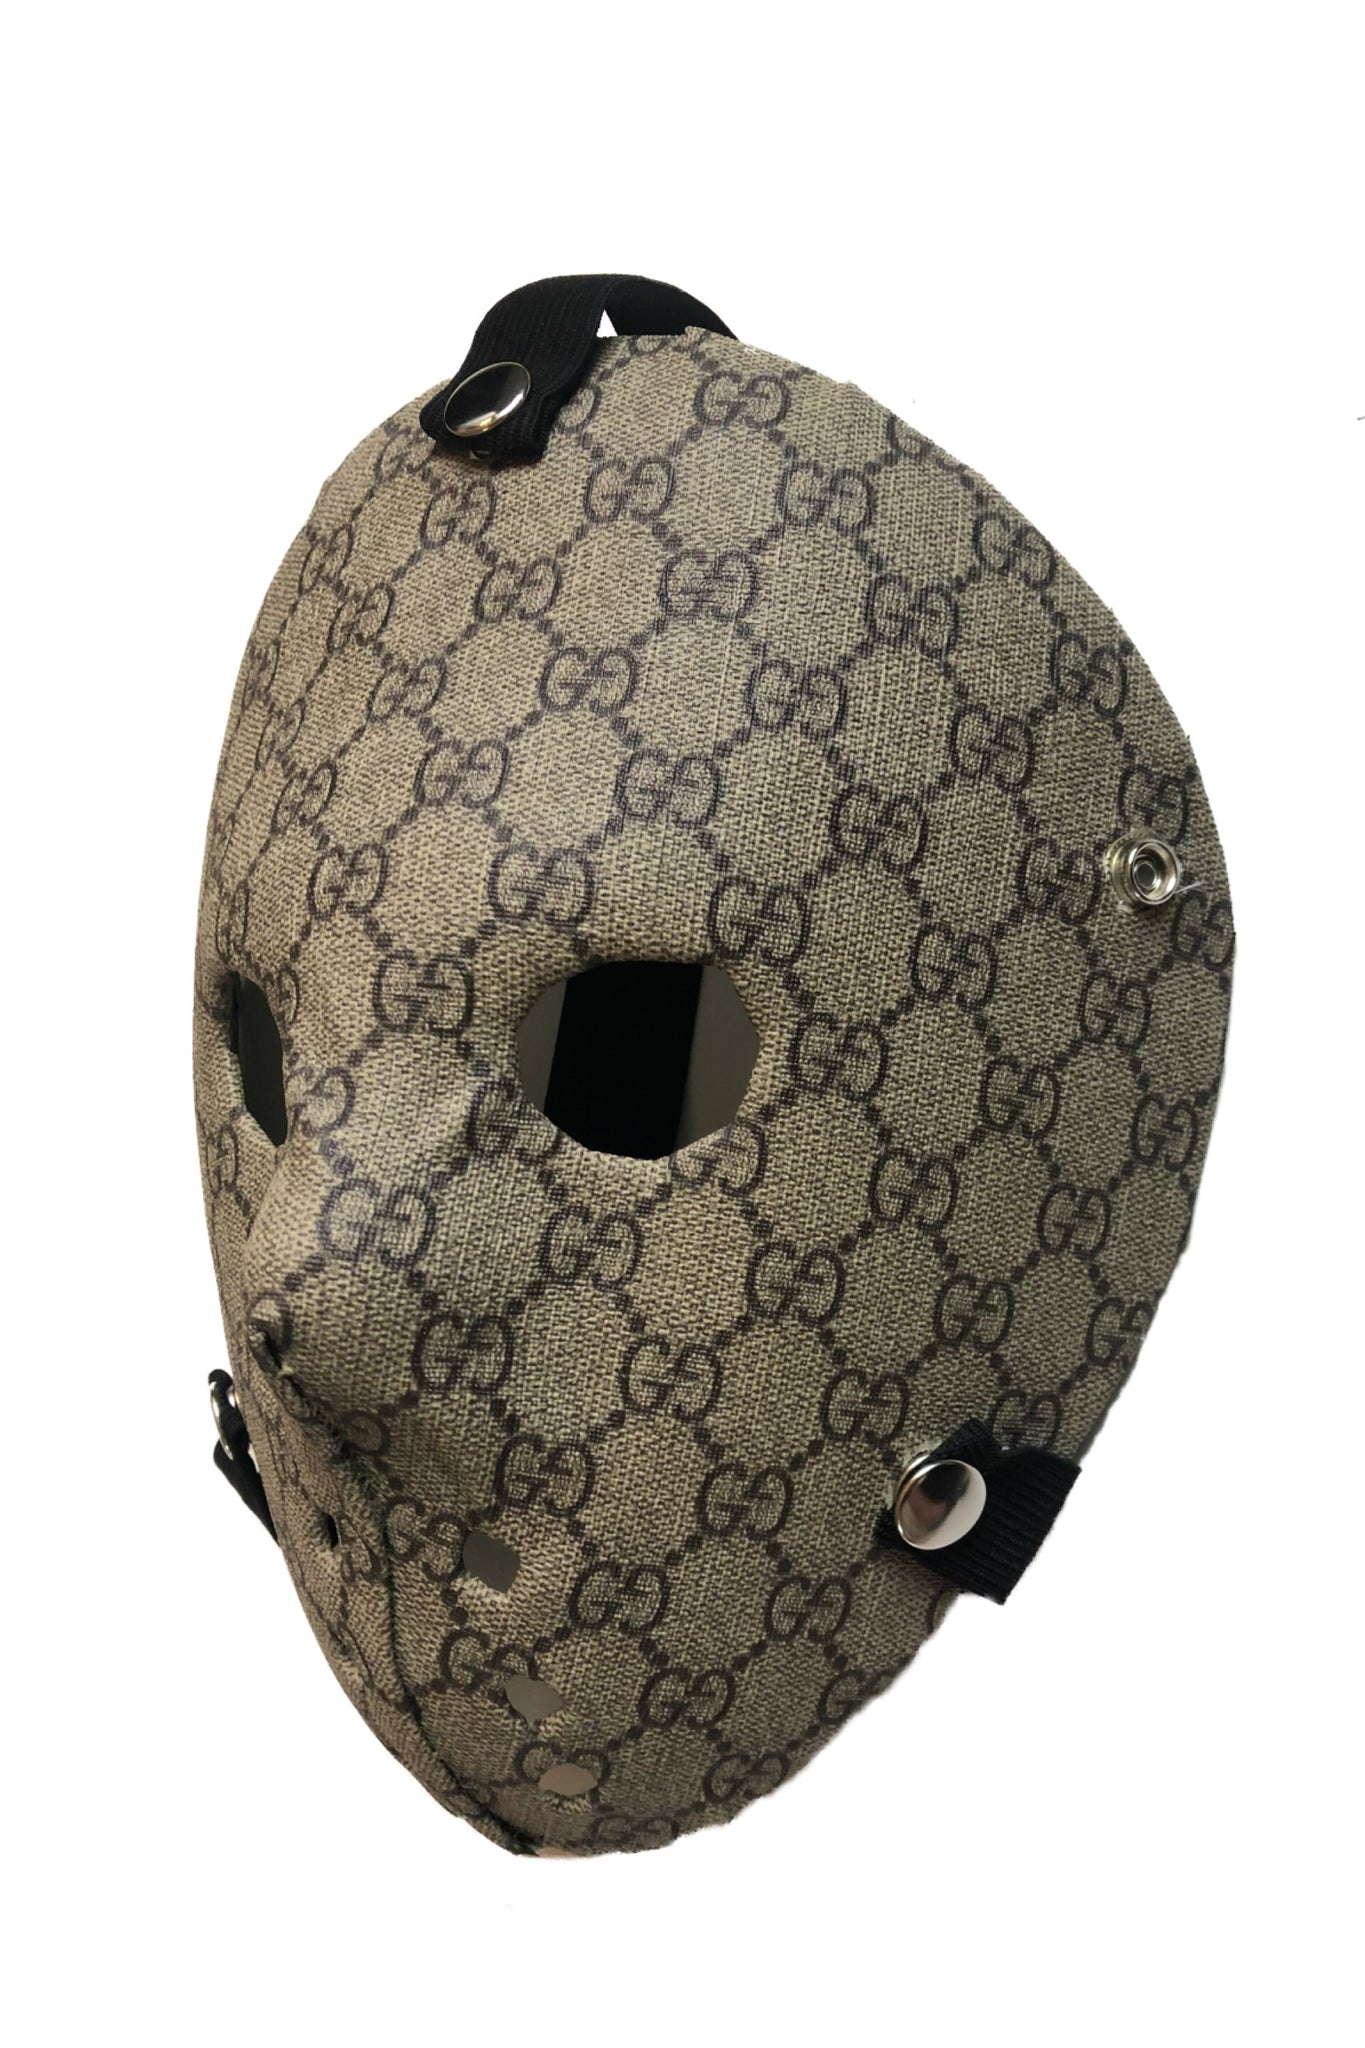 Custom Jason Mask Available in All Materials \u2013 Tayler Bullish